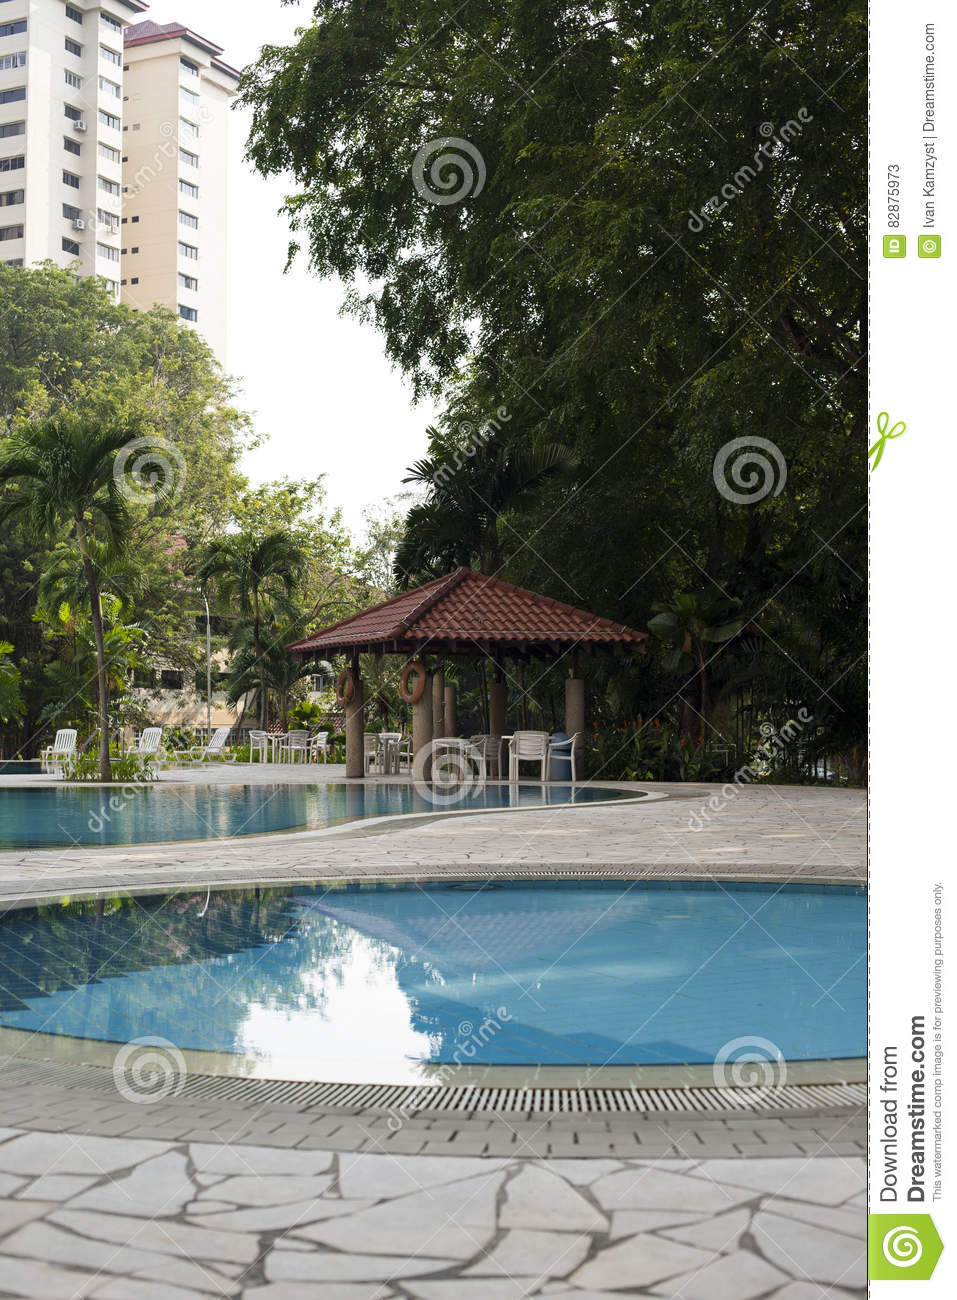 Modern villa outdoor with swimming pool and gazebo stock for Garden treasures pool clock